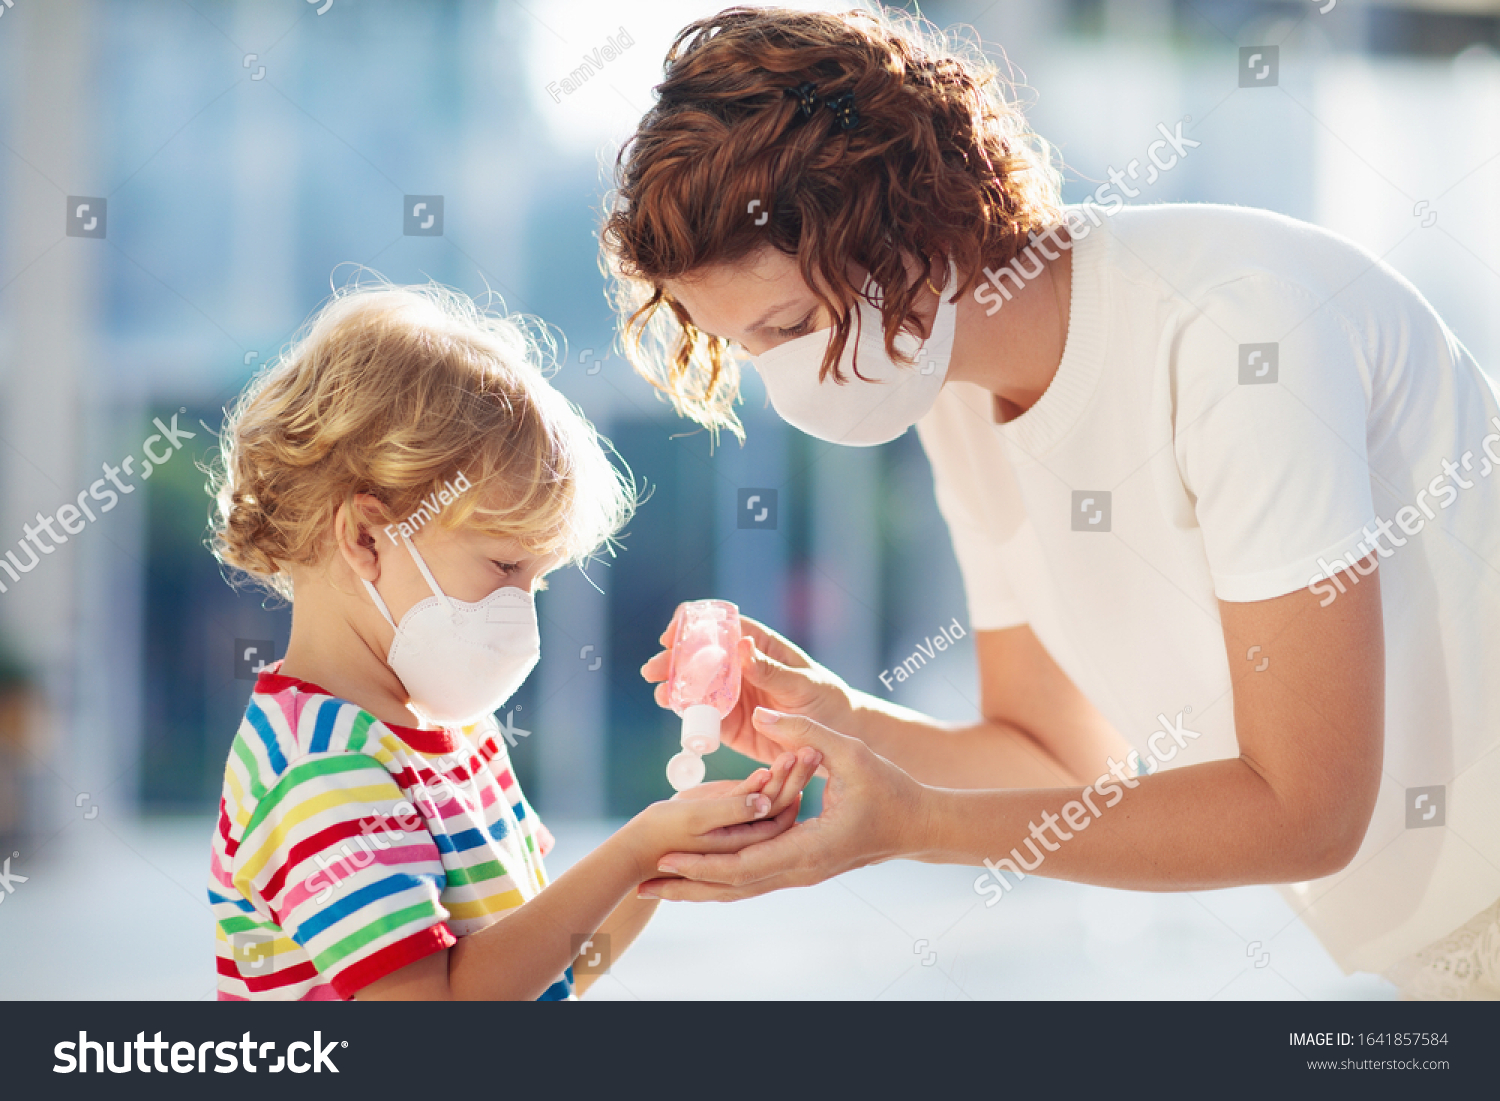 Family with kids in face mask in shopping mall or airport. Mother and child wear facemask during coronavirus and flu outbreak. Virus and illness protection, hand sanitizer in public crowded place. #1641857584